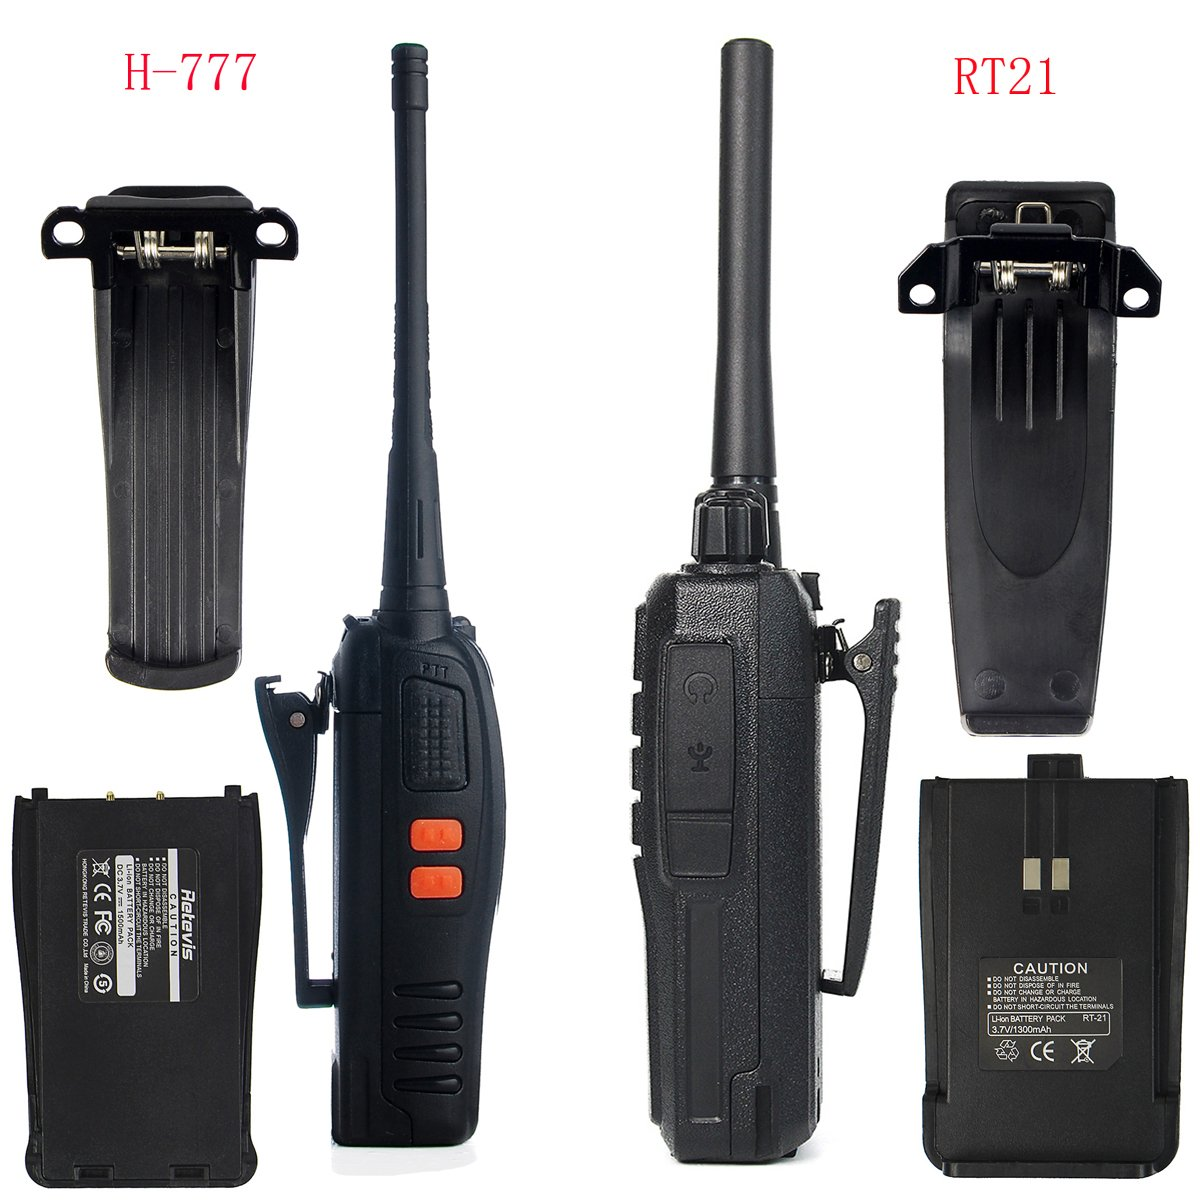 Retevis RT21 Walkie Talkies 16CH FRS Two Way Radio VOX Scrambler 2 Way Radios(5 Pack) with 2 Pin Covert Air Acoustic Earpiece (5 Pack) by Retevis (Image #3)